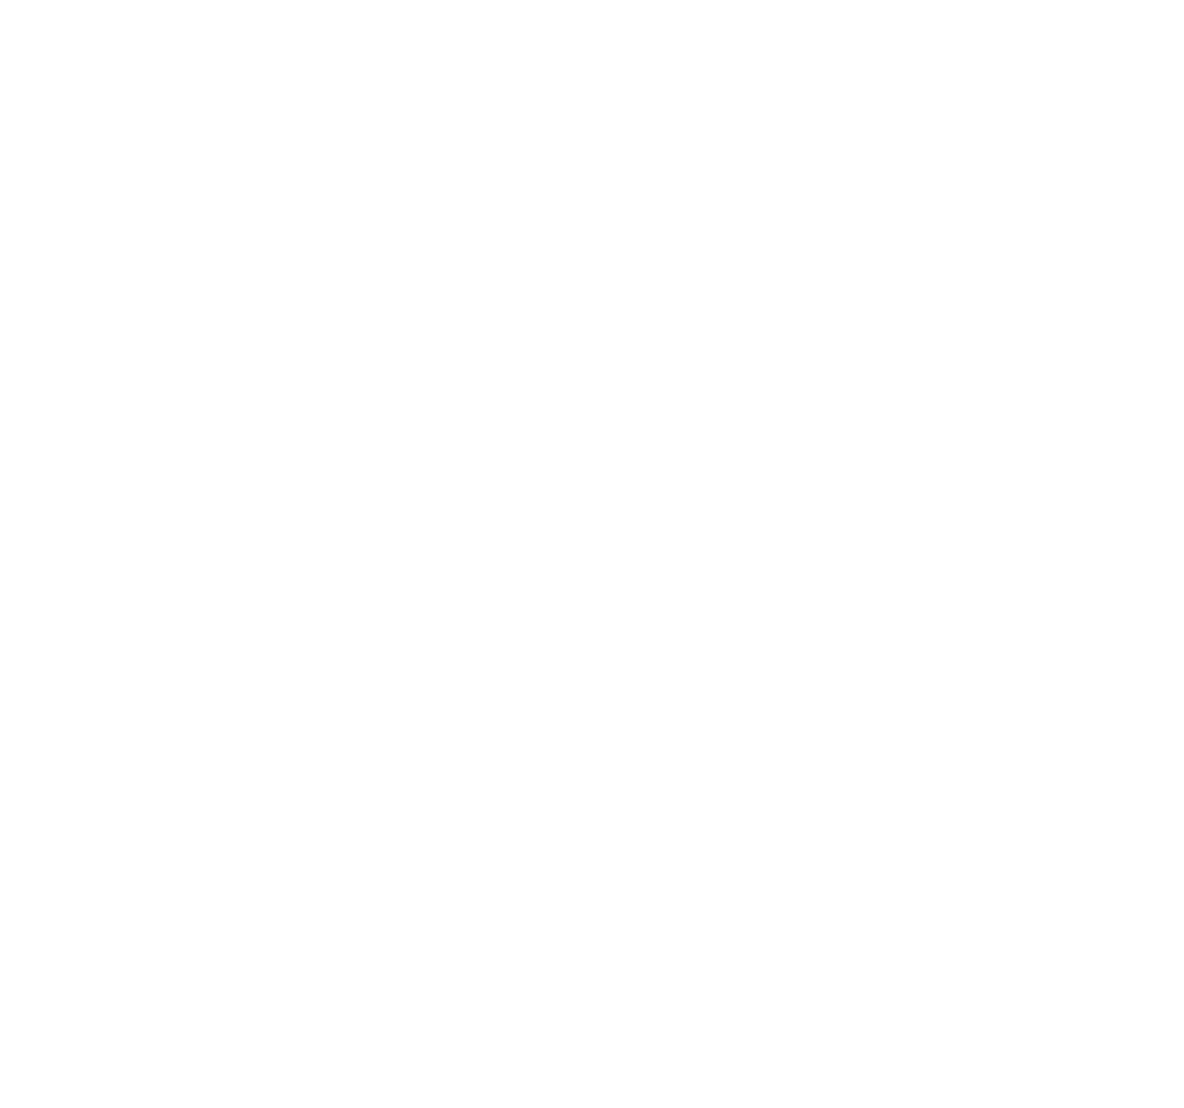 The Aylmer District Trapper's Council